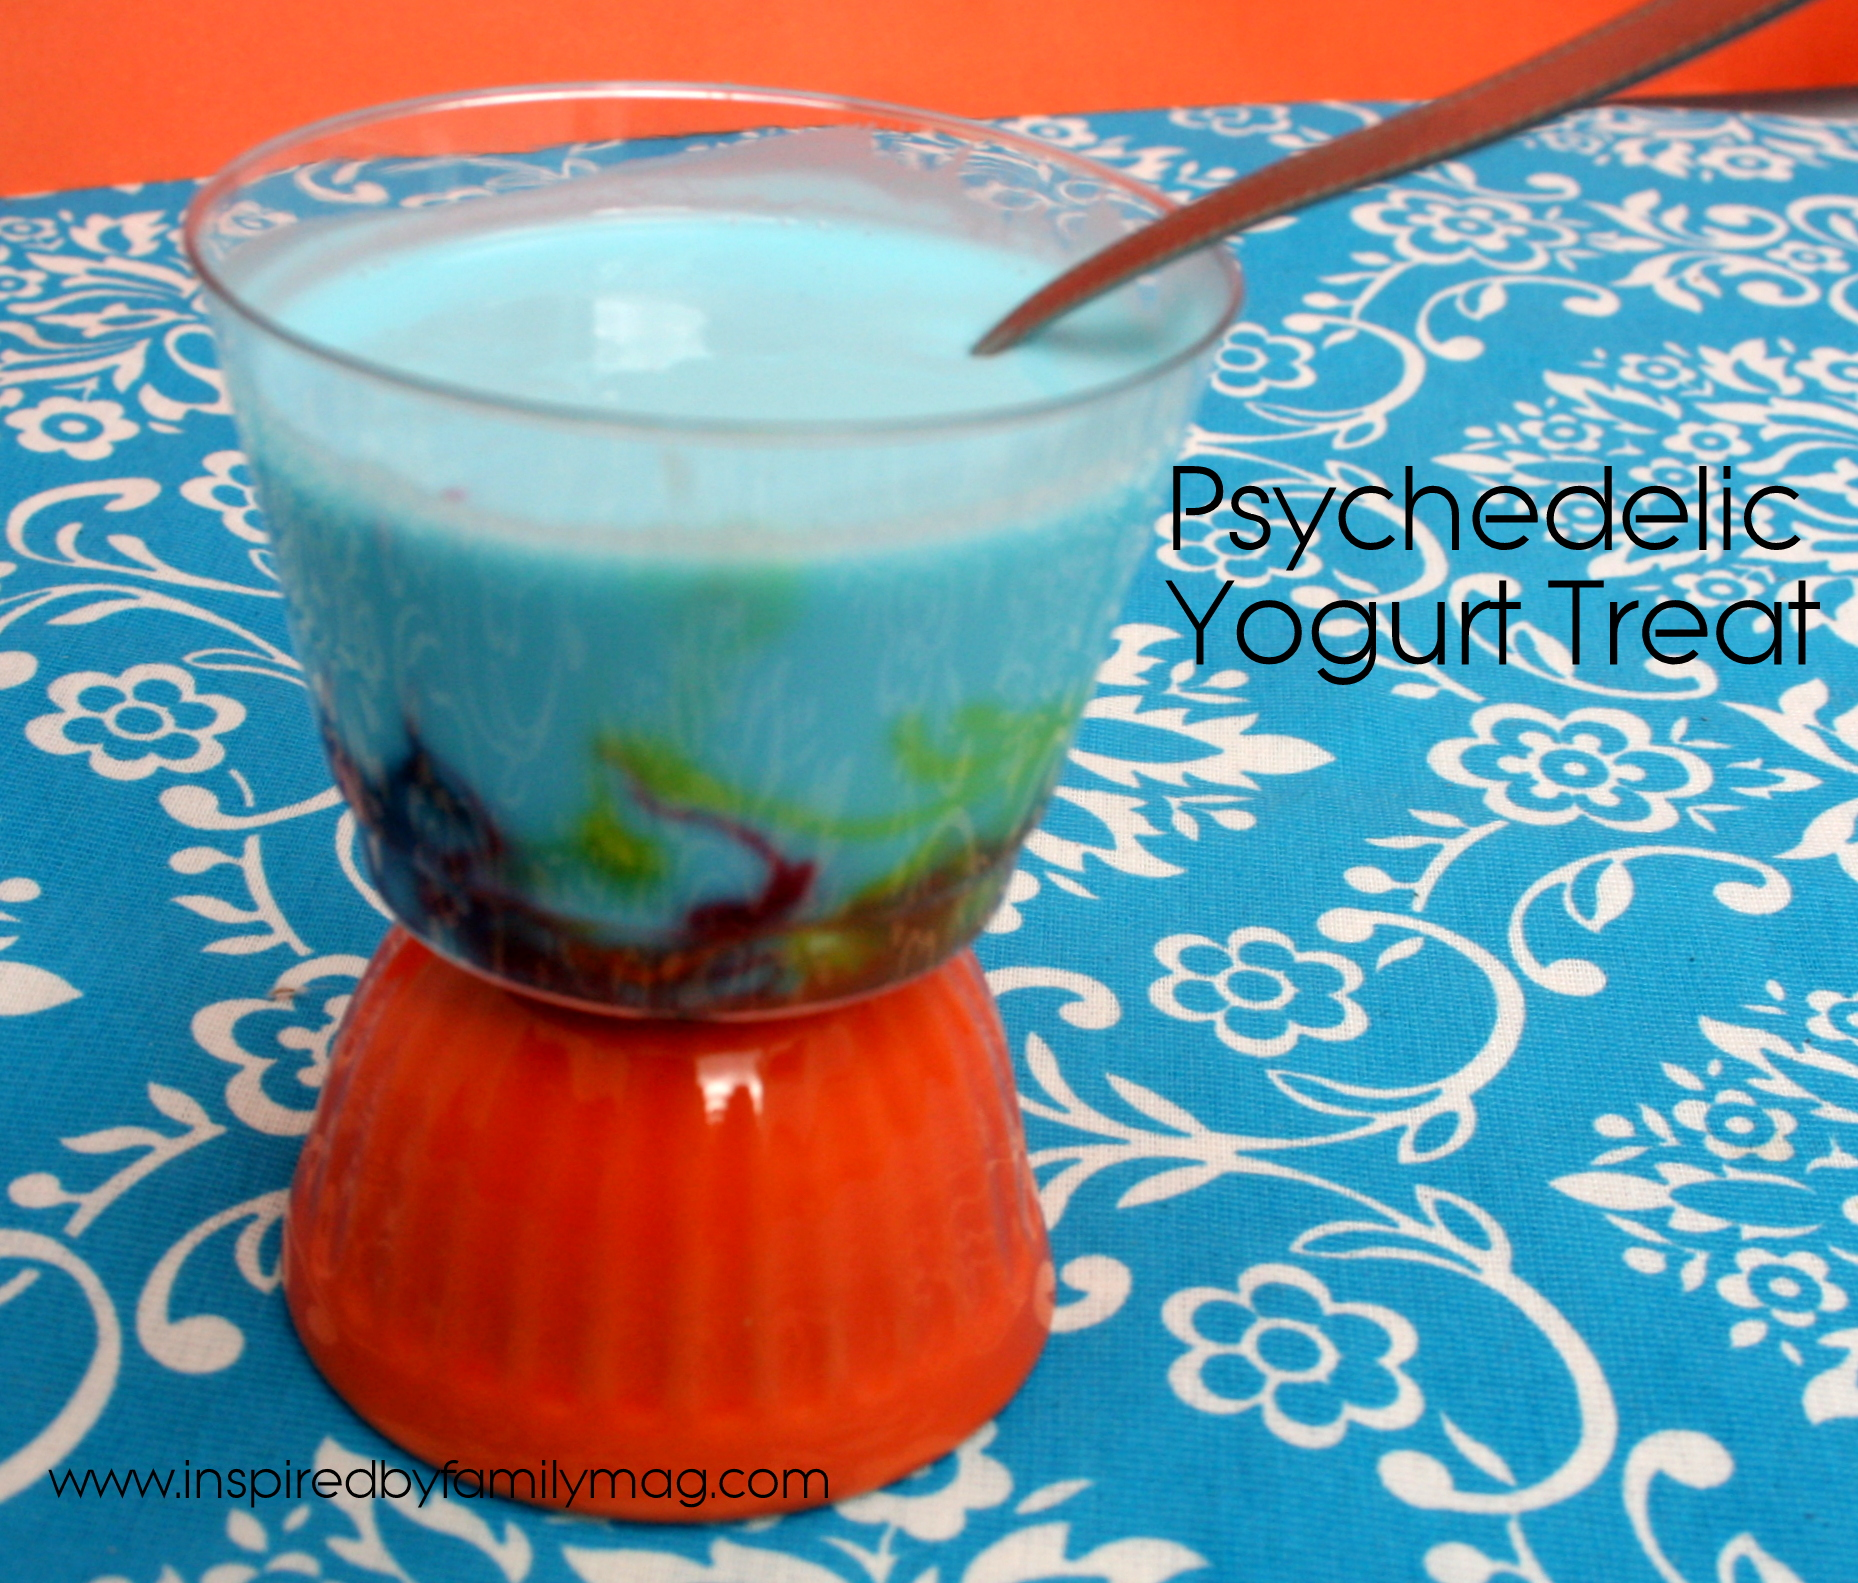 Edible Science Fun: Psychedelic Yogurt - Inspired by Family